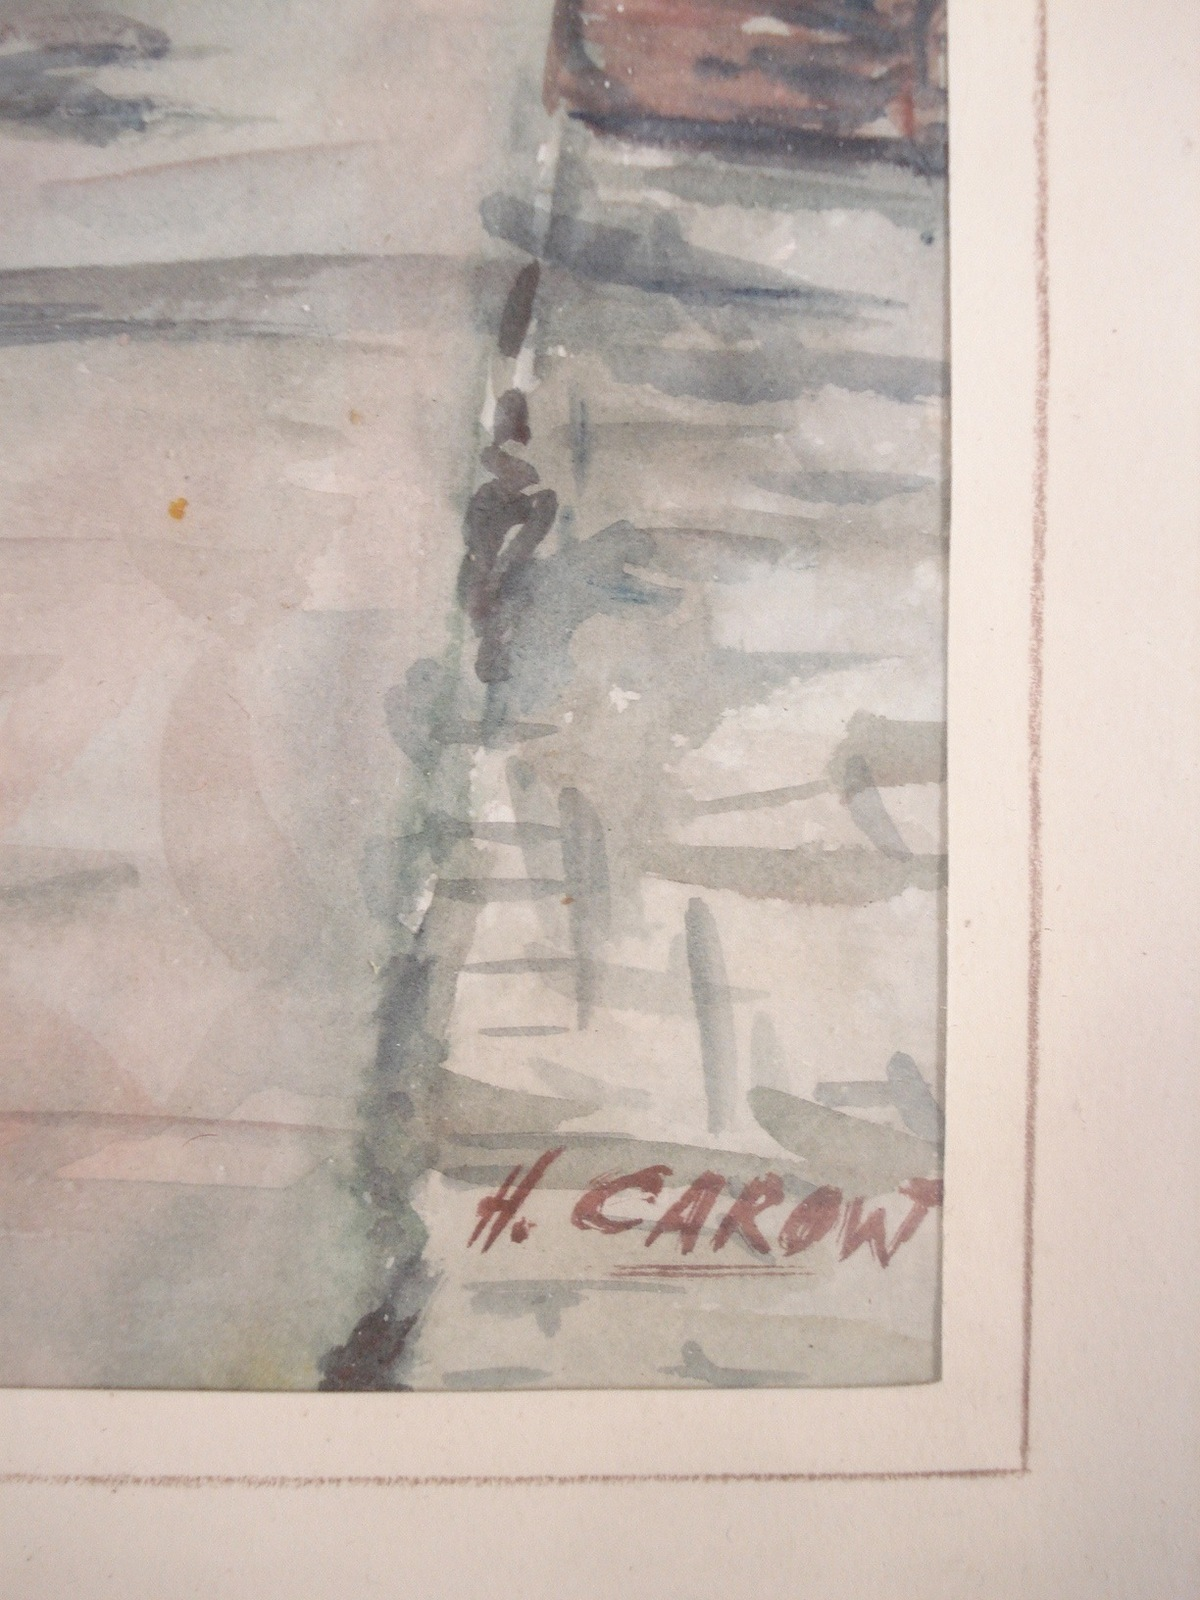 Art Painting Signed H Carow Watercolor Fishing Boat Decor New Bedford MA 01300